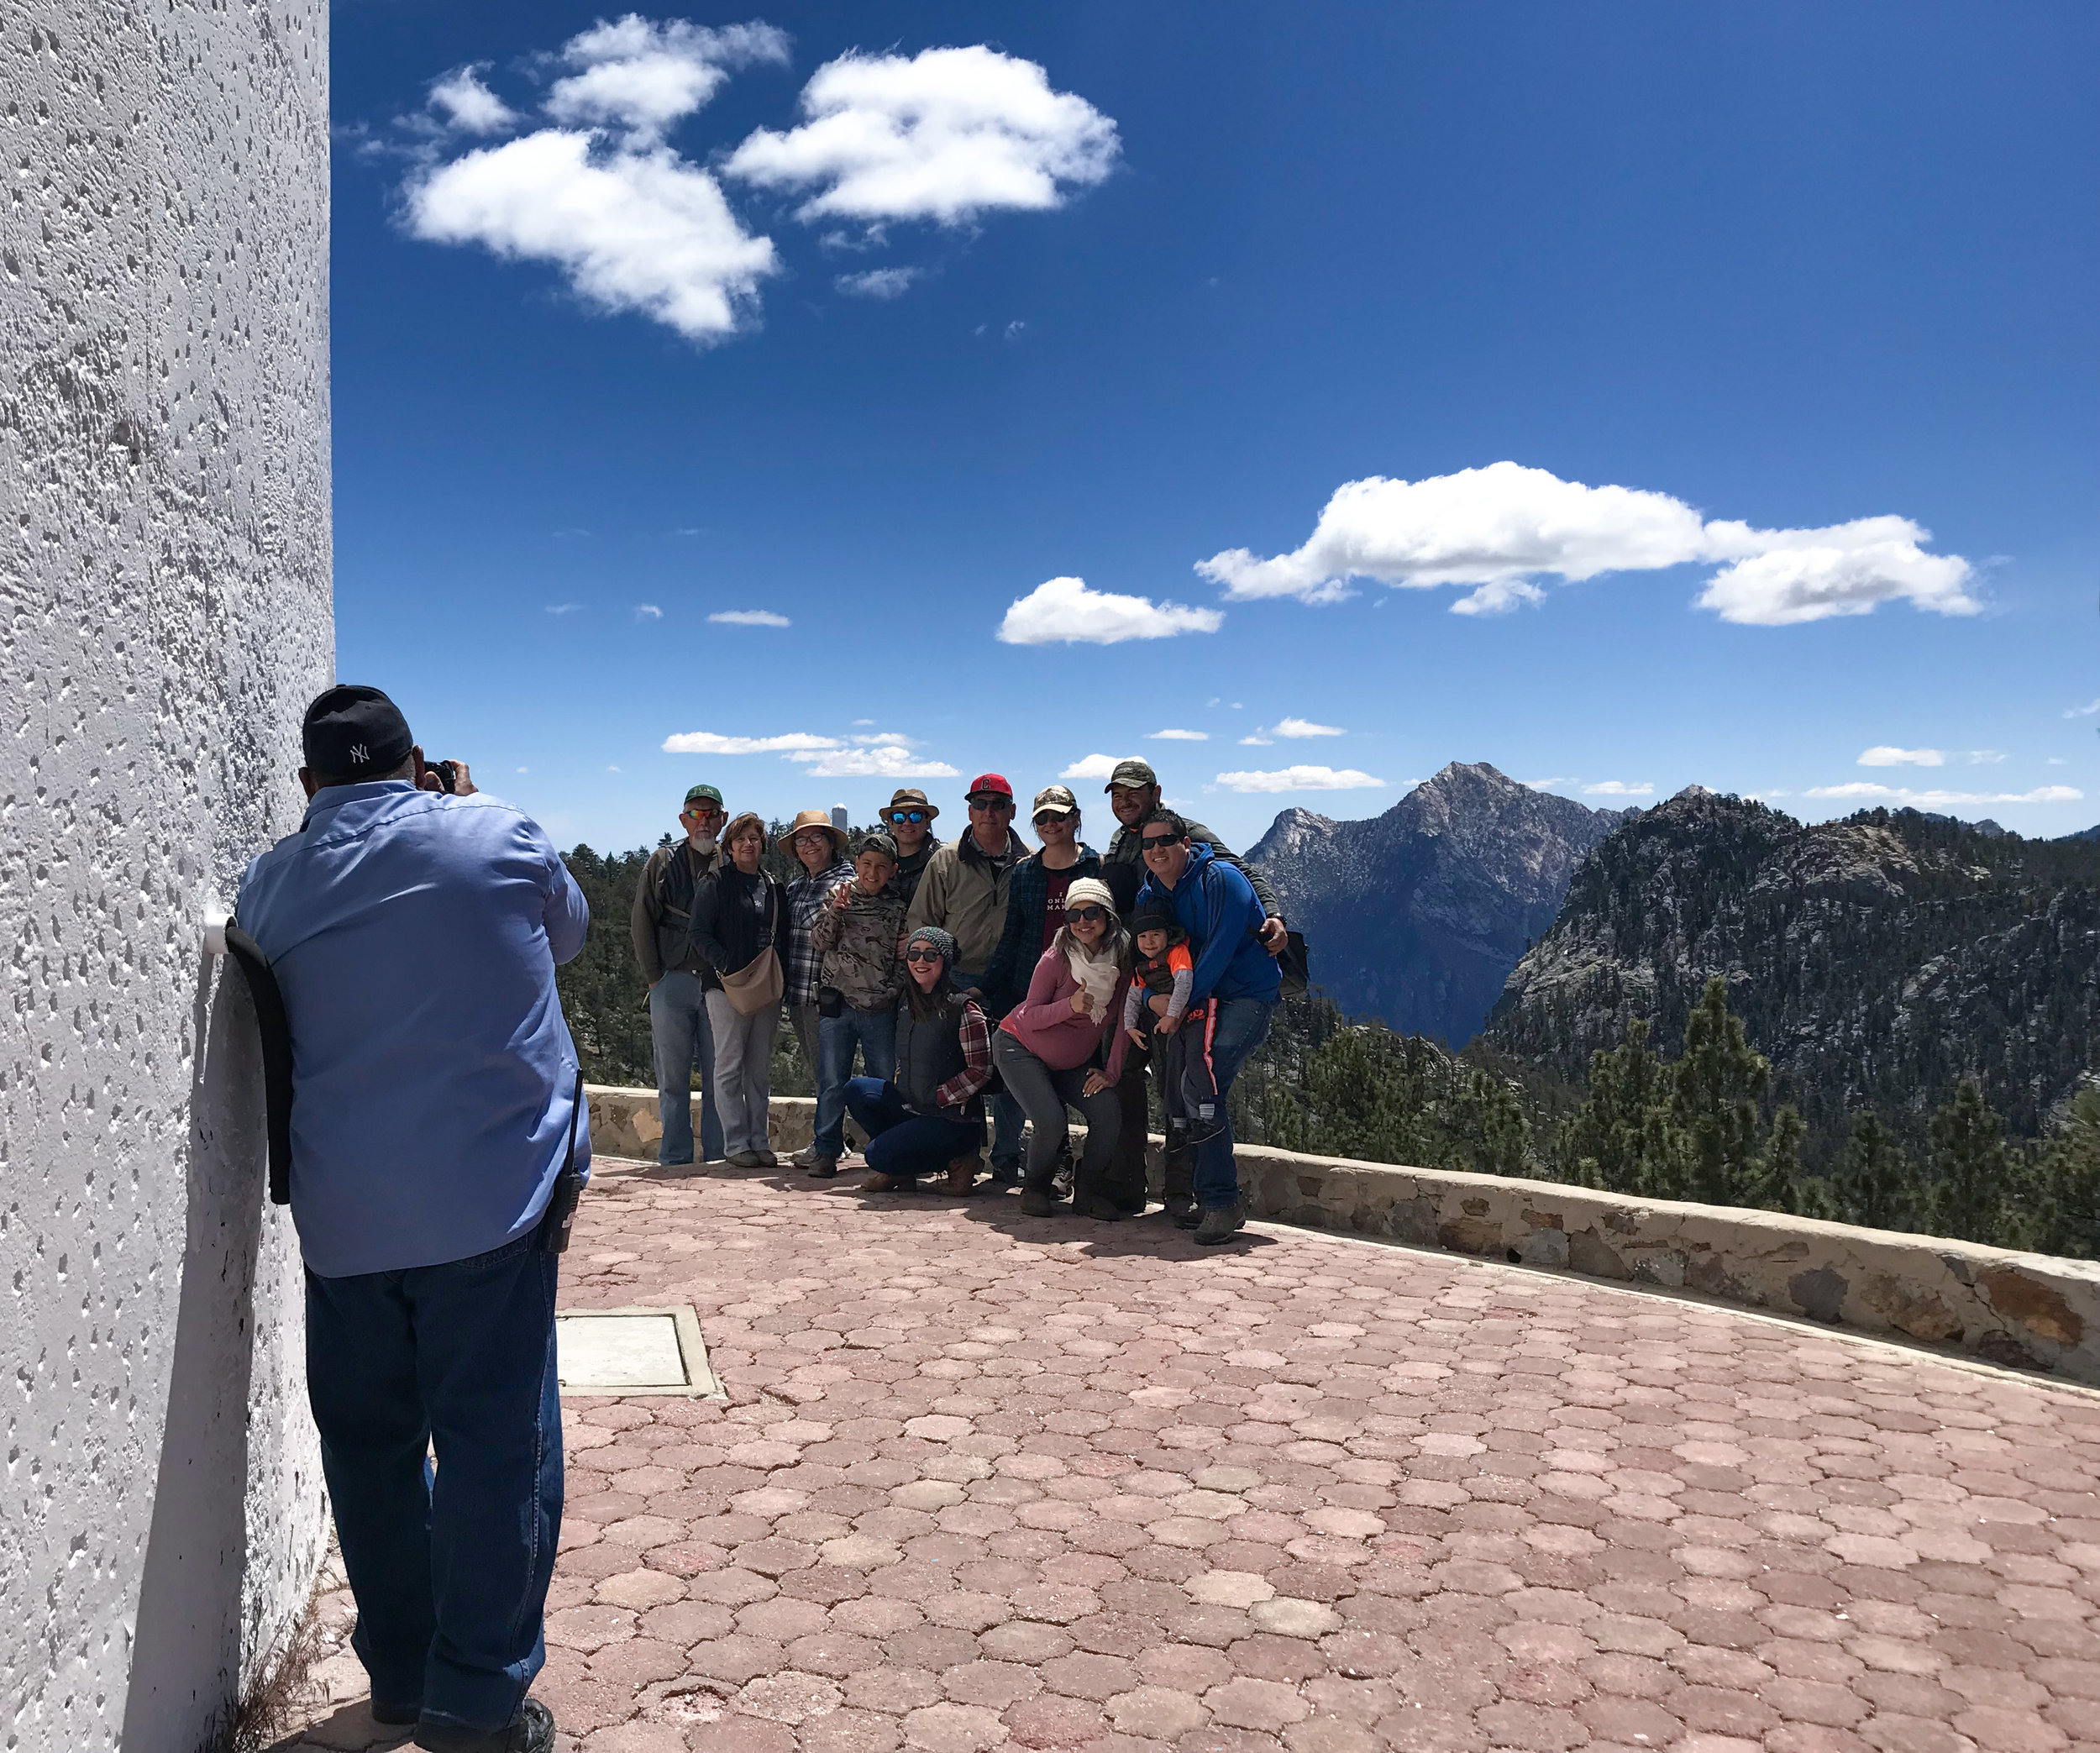 Our tour guide taking a family photo of a group. What a view!